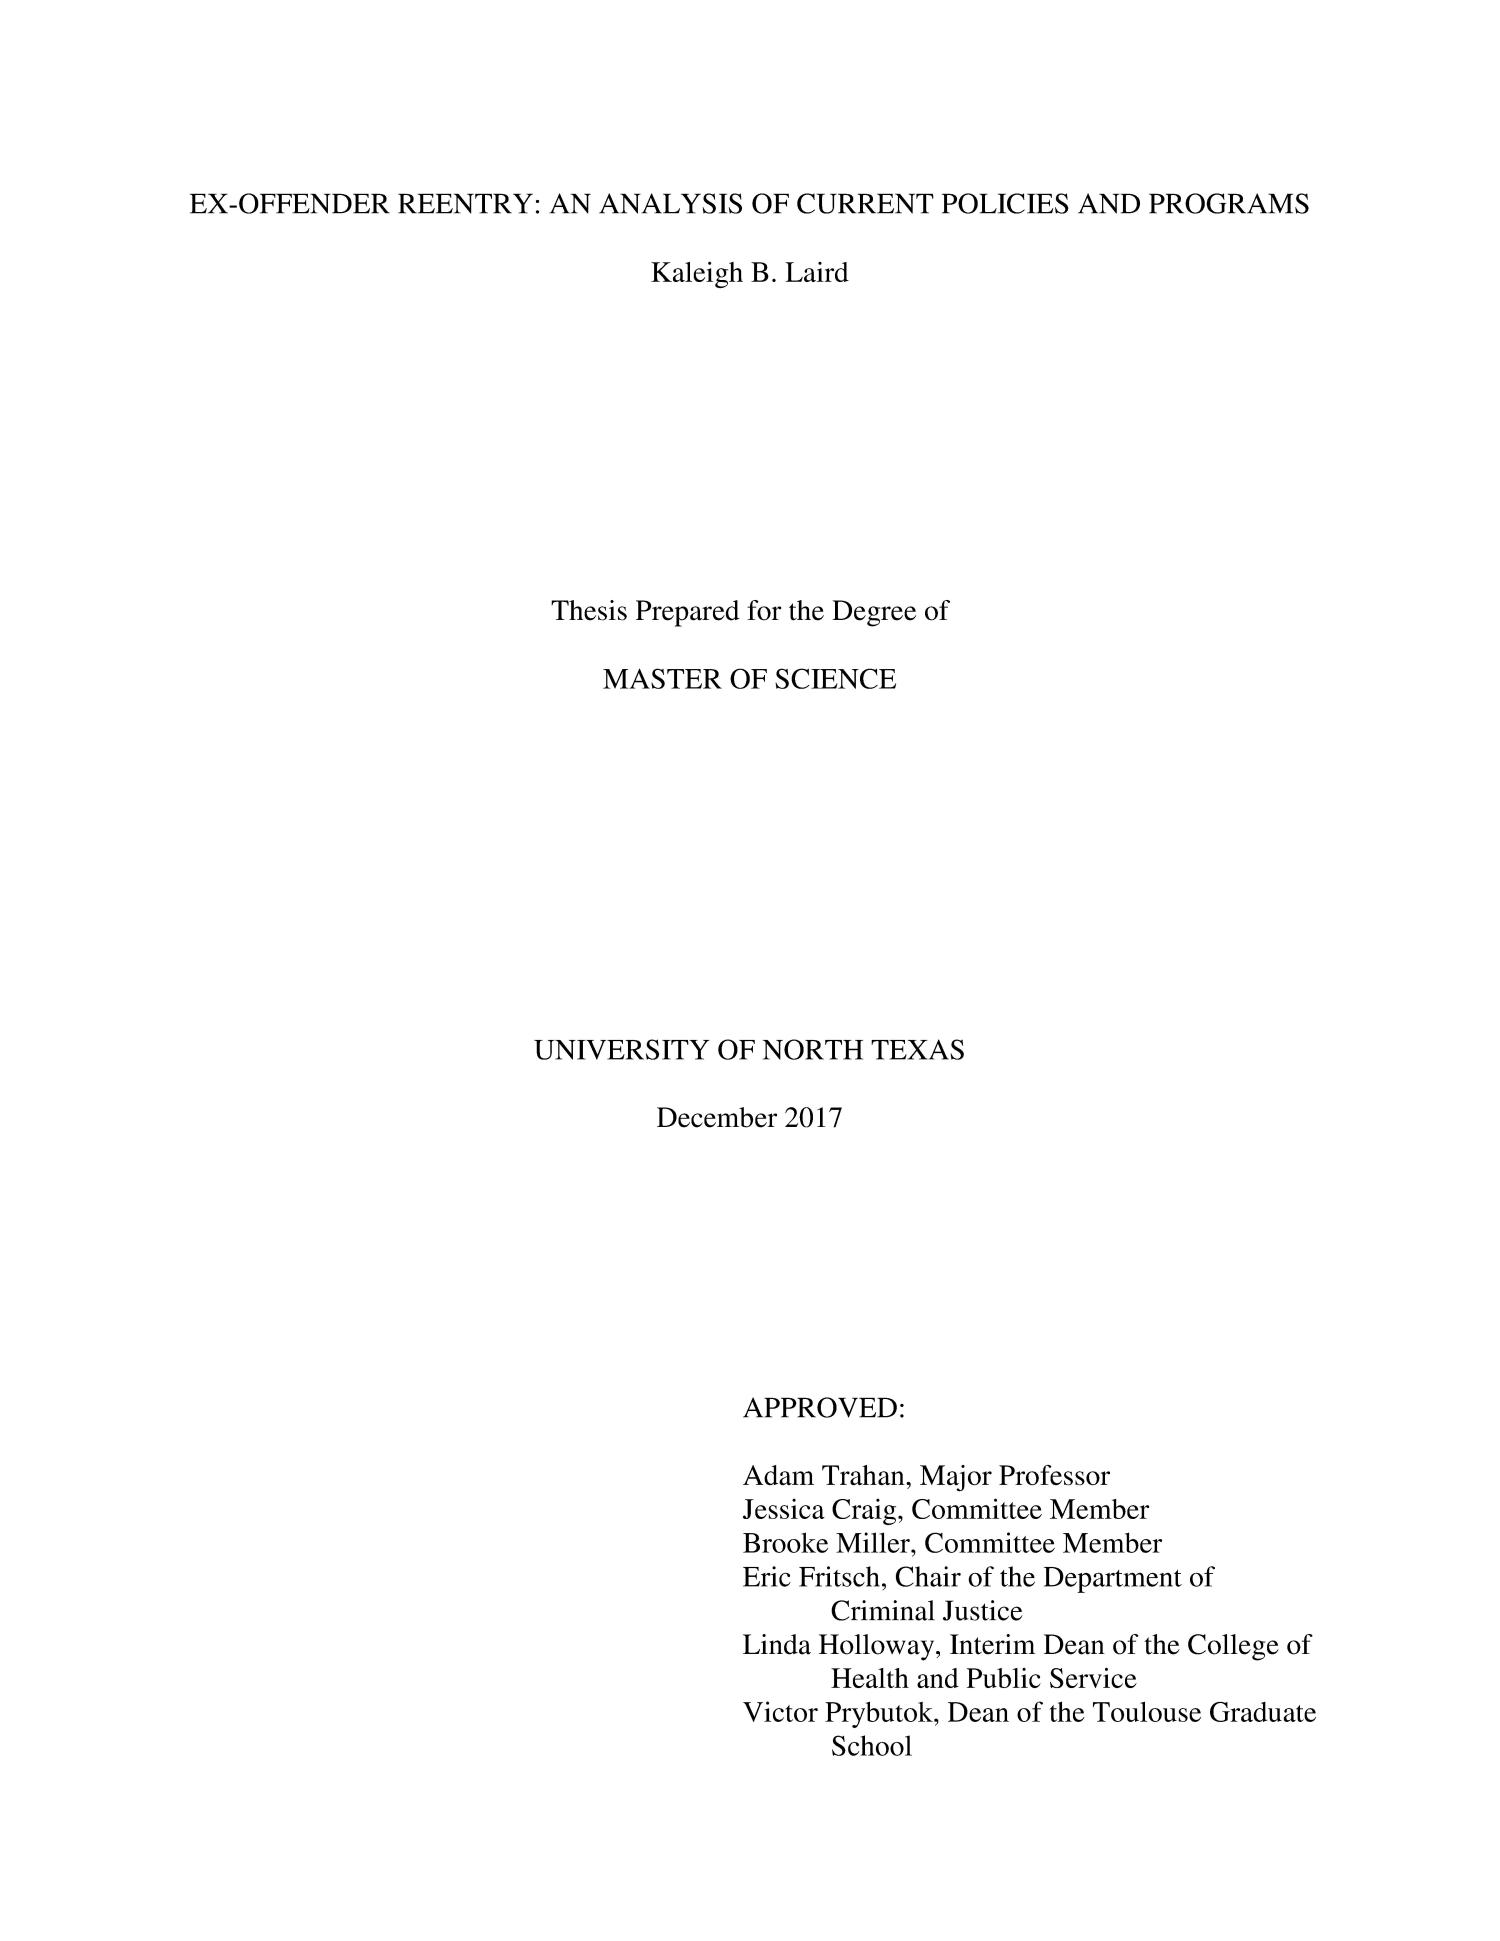 Ex-Offender Reentry: An Analysis of Current Policies and Programs                                                                                                      Title Page